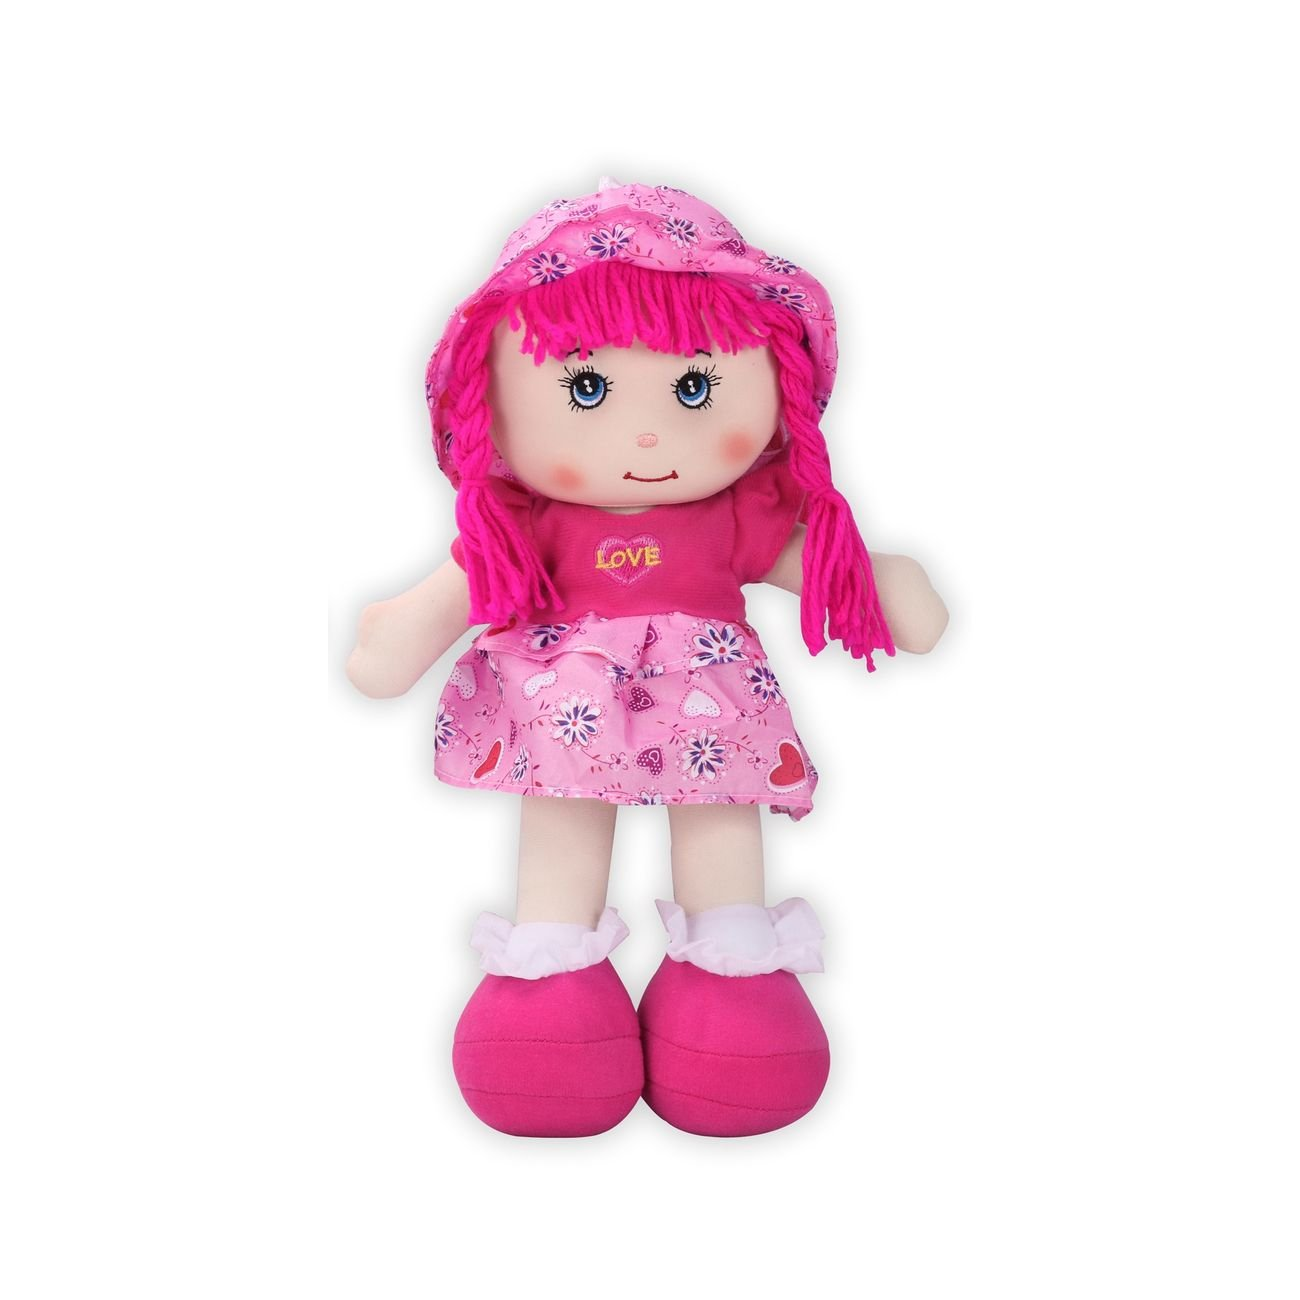 50CM RAG DOLLS ASSORTMENT